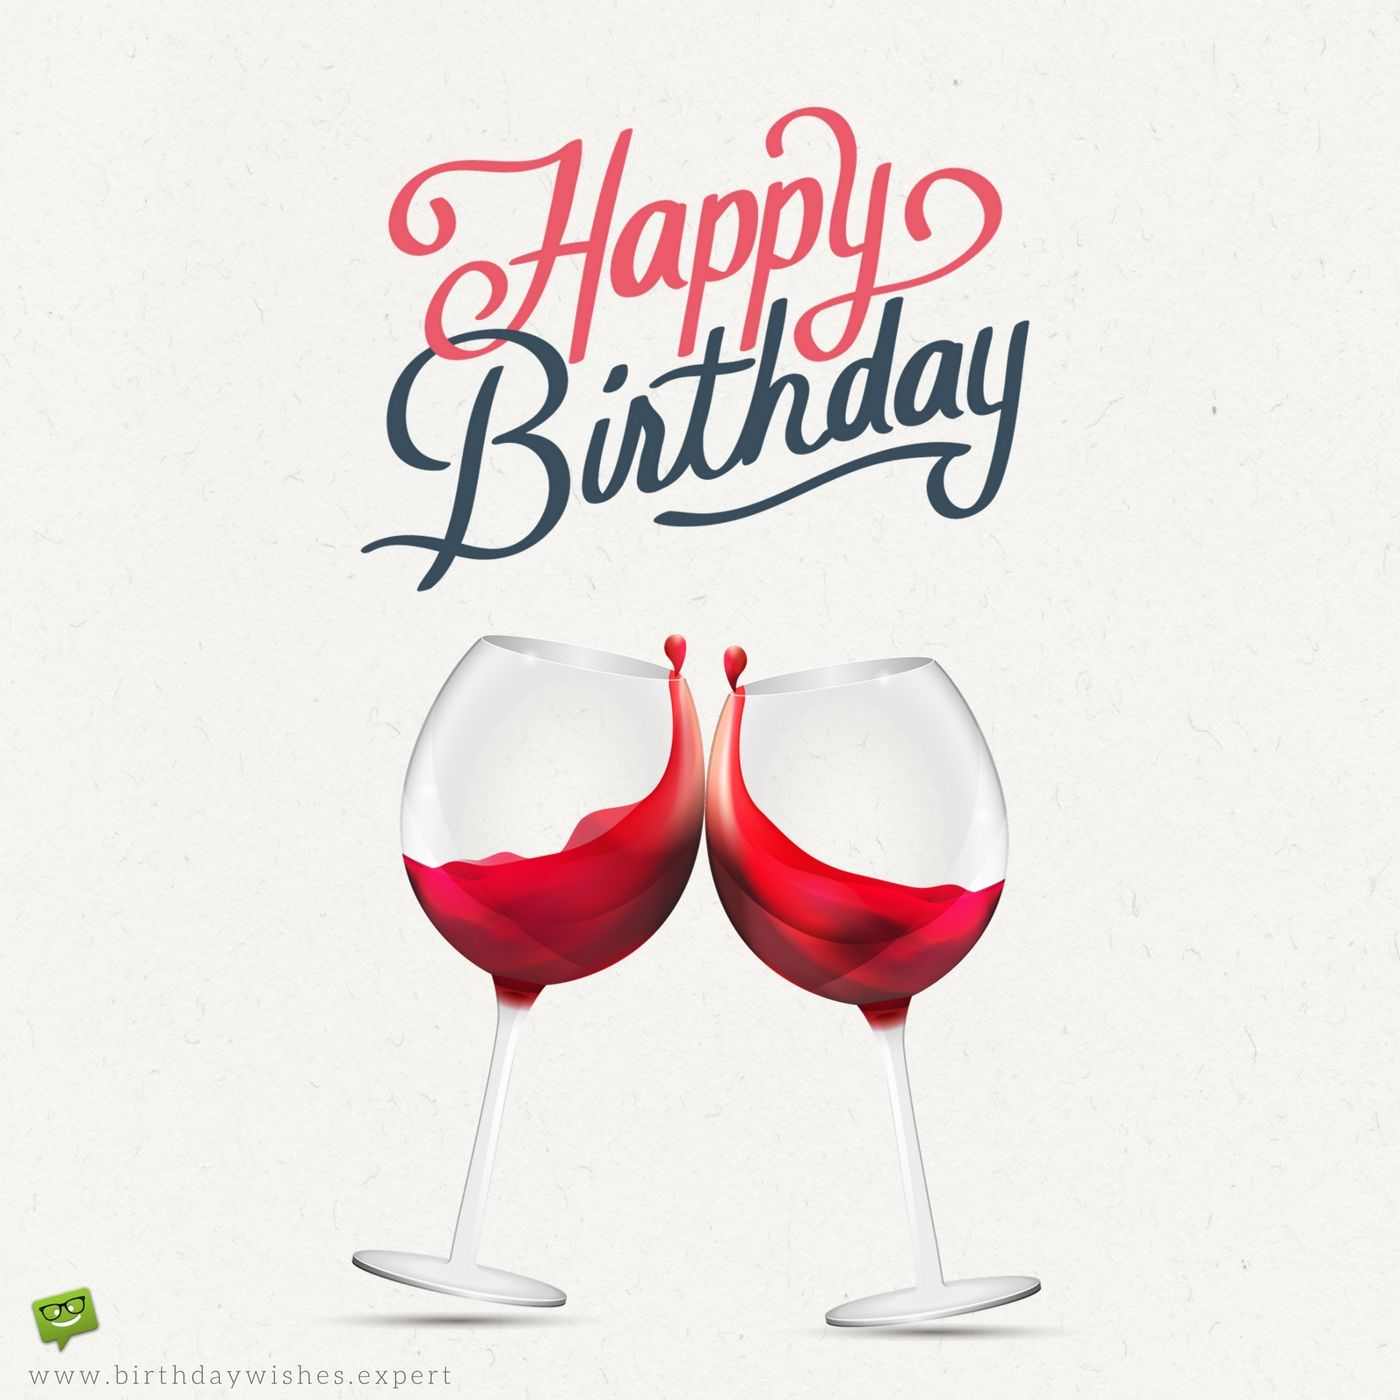 Original Birthday Quotes For Your Husband Happy Birthday Wine Birthday Wishes Funny Happy Birthday